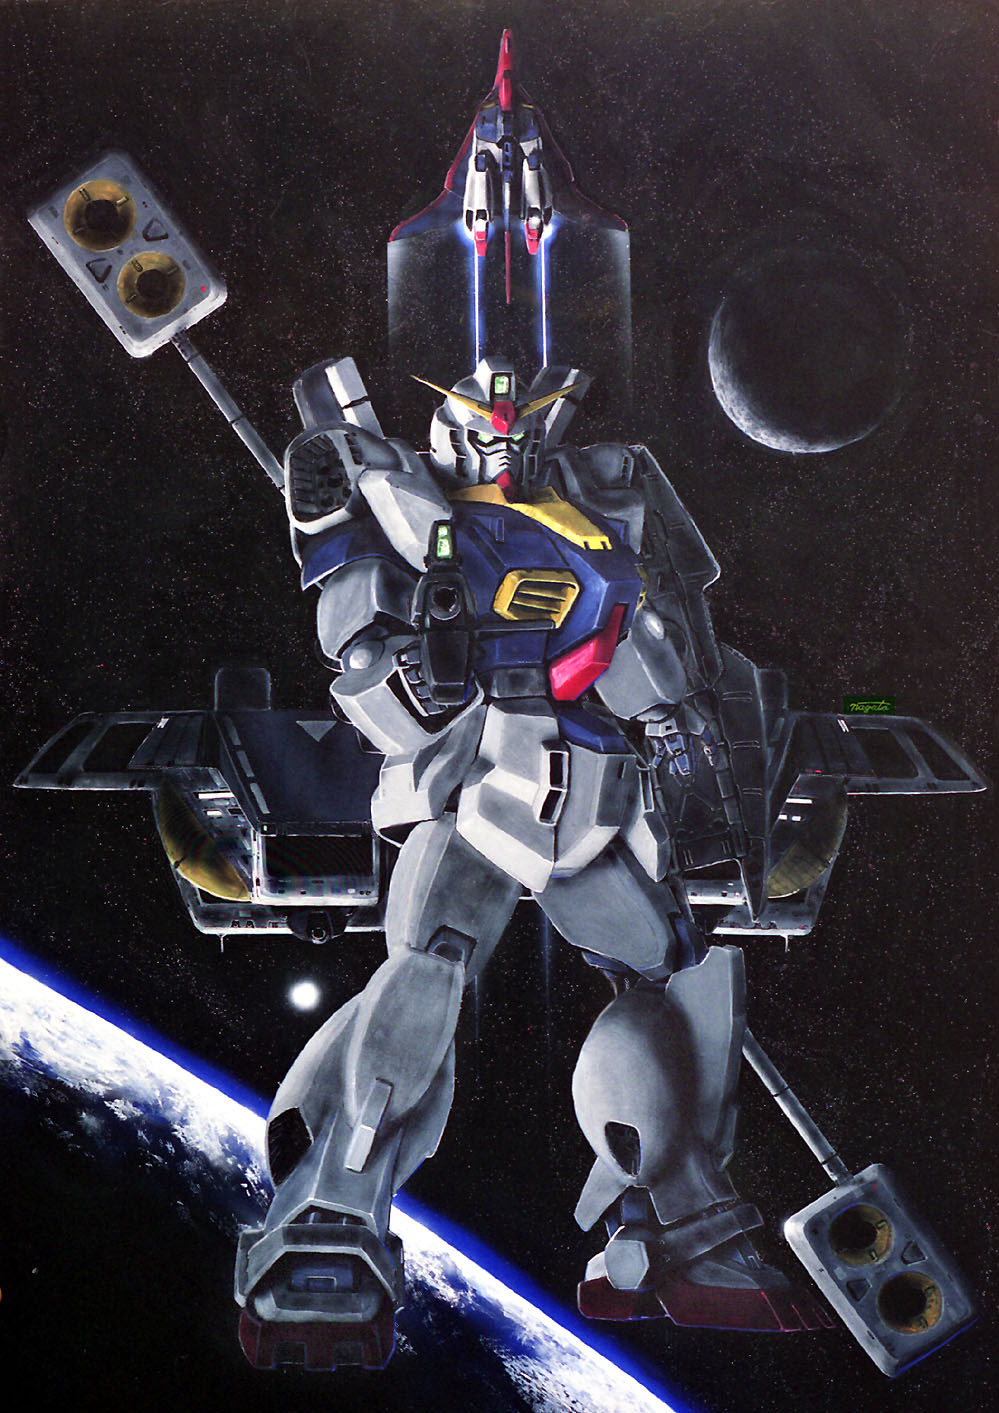 argama beam_rifle energy_gun gun gundam gundam_mk_ii highres holding holding_gun holding_shield holding_weapon mecha oldschool rifle shield space space_craft taganer weapon zeta_gundam zeta_gundam_(mobile_suit)